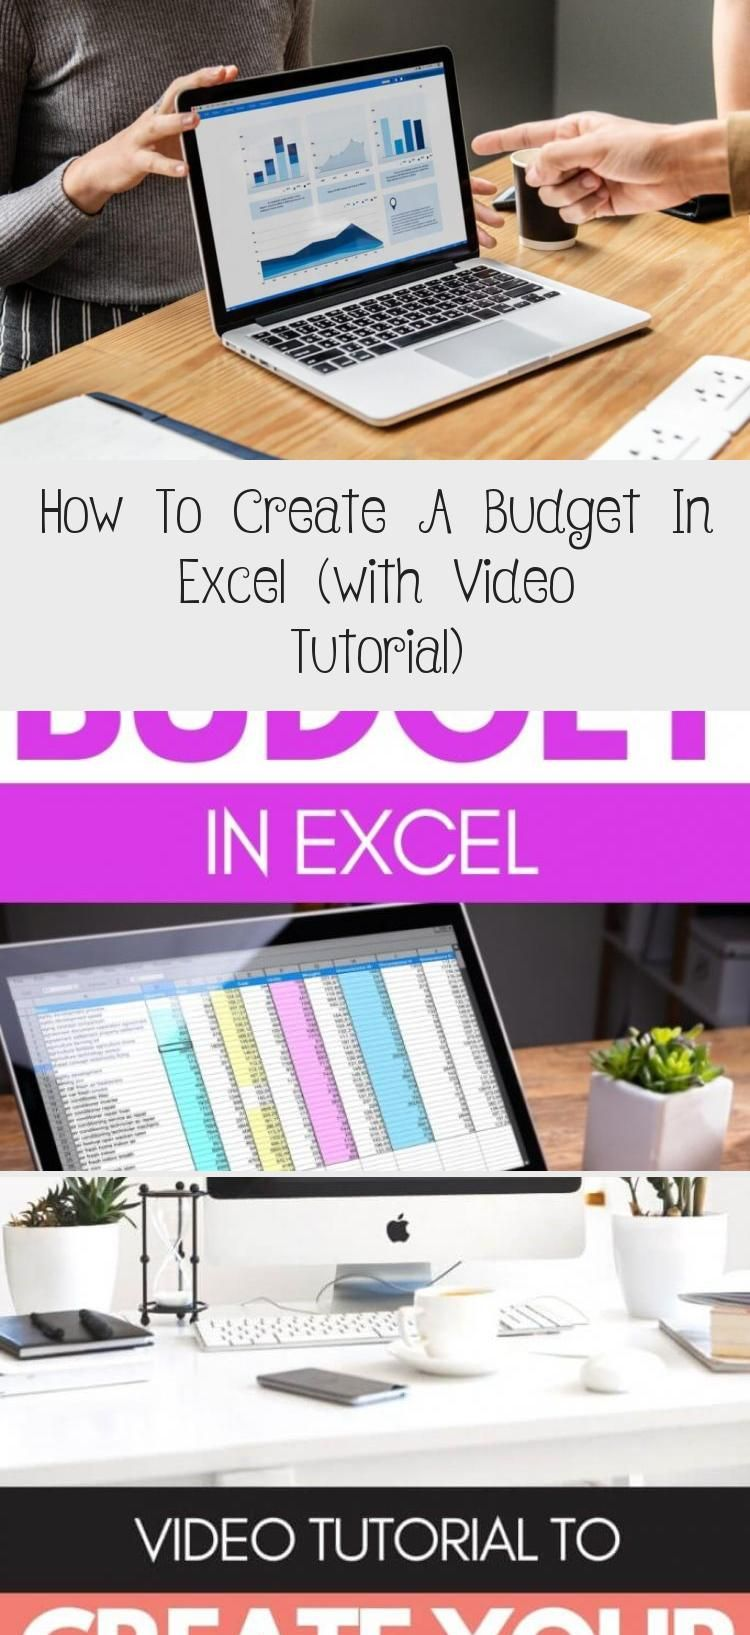 Want to create your own budget template in Excel? Check